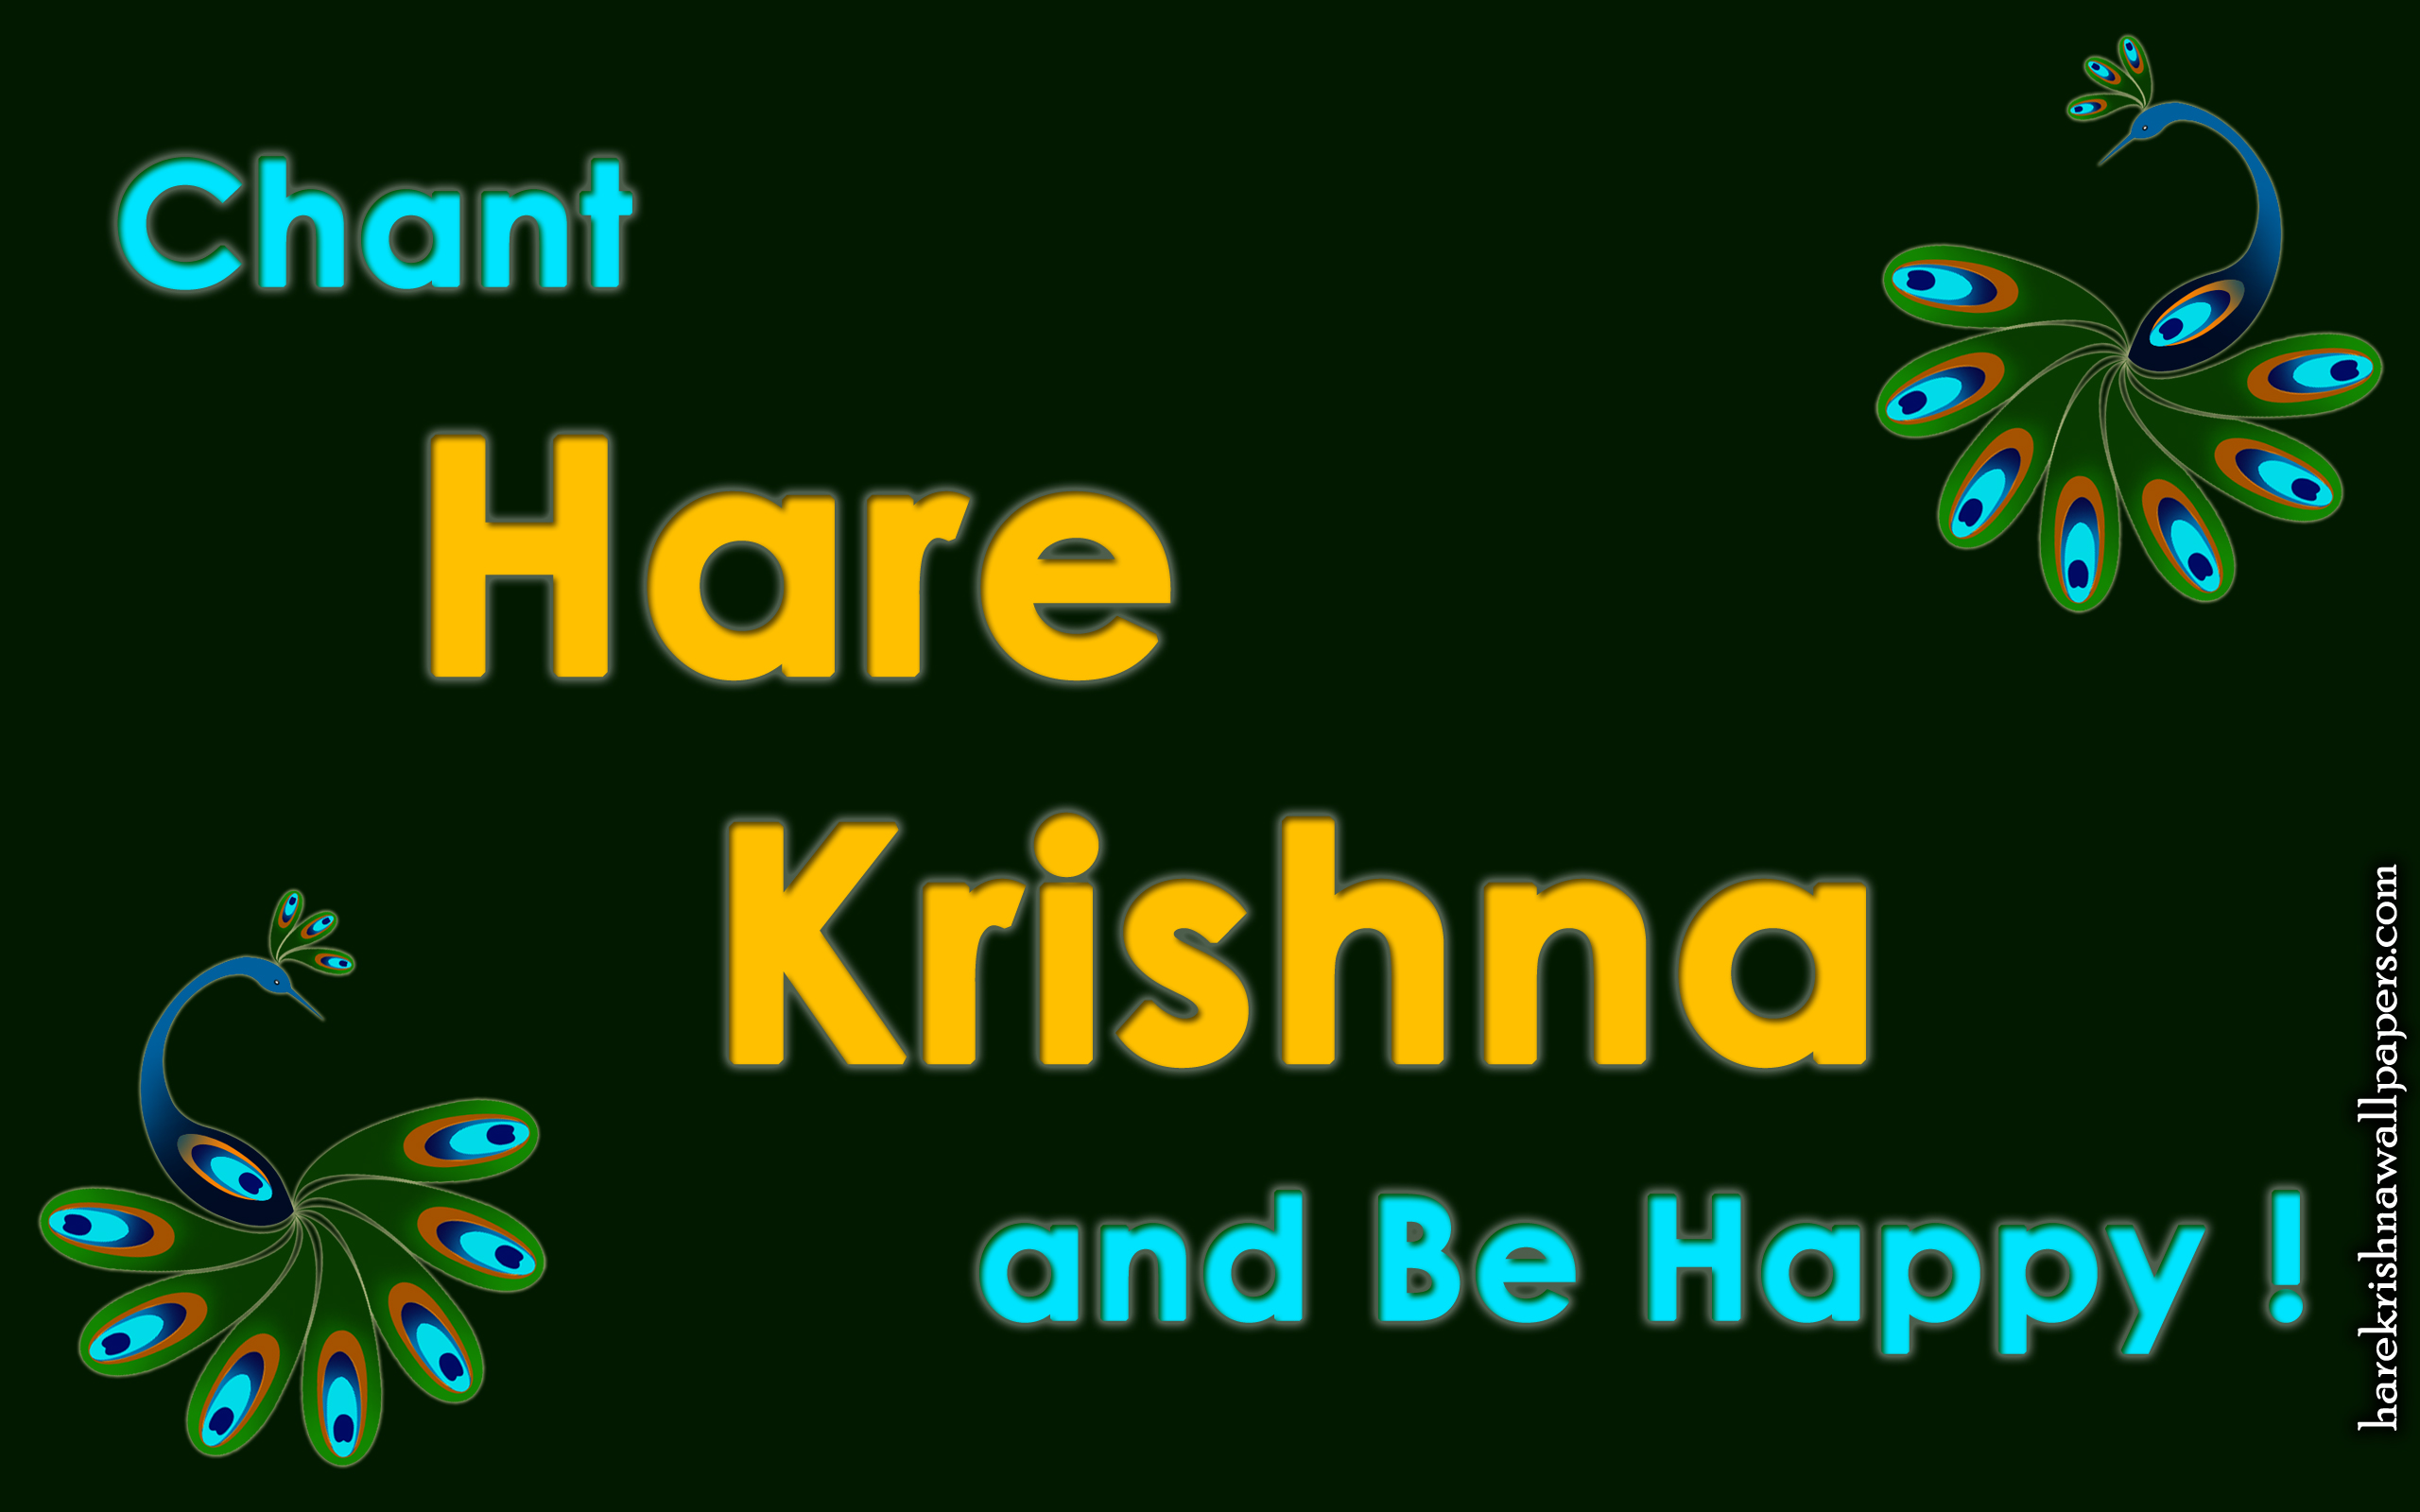 Chant Hare Krishna and be happy Wallpaper (006) Size 2560x1600 Download